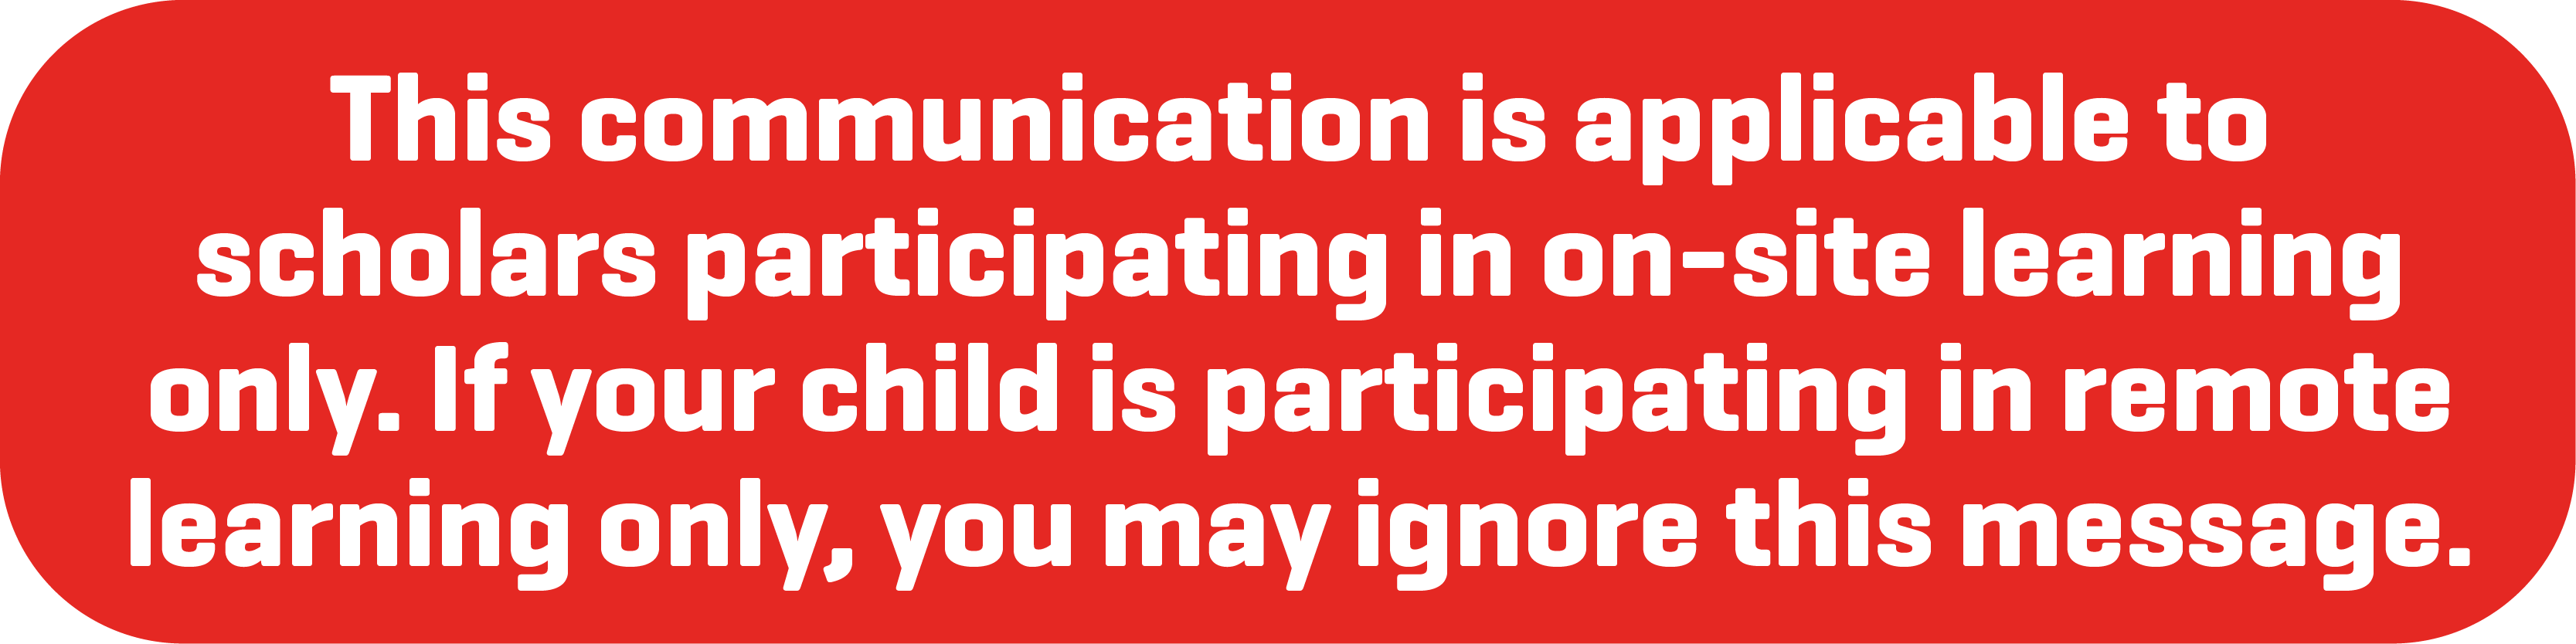 This communication is applicable to scholars participating in on-site learning only. If your child is participating in remote learning only, you may ignore this message.